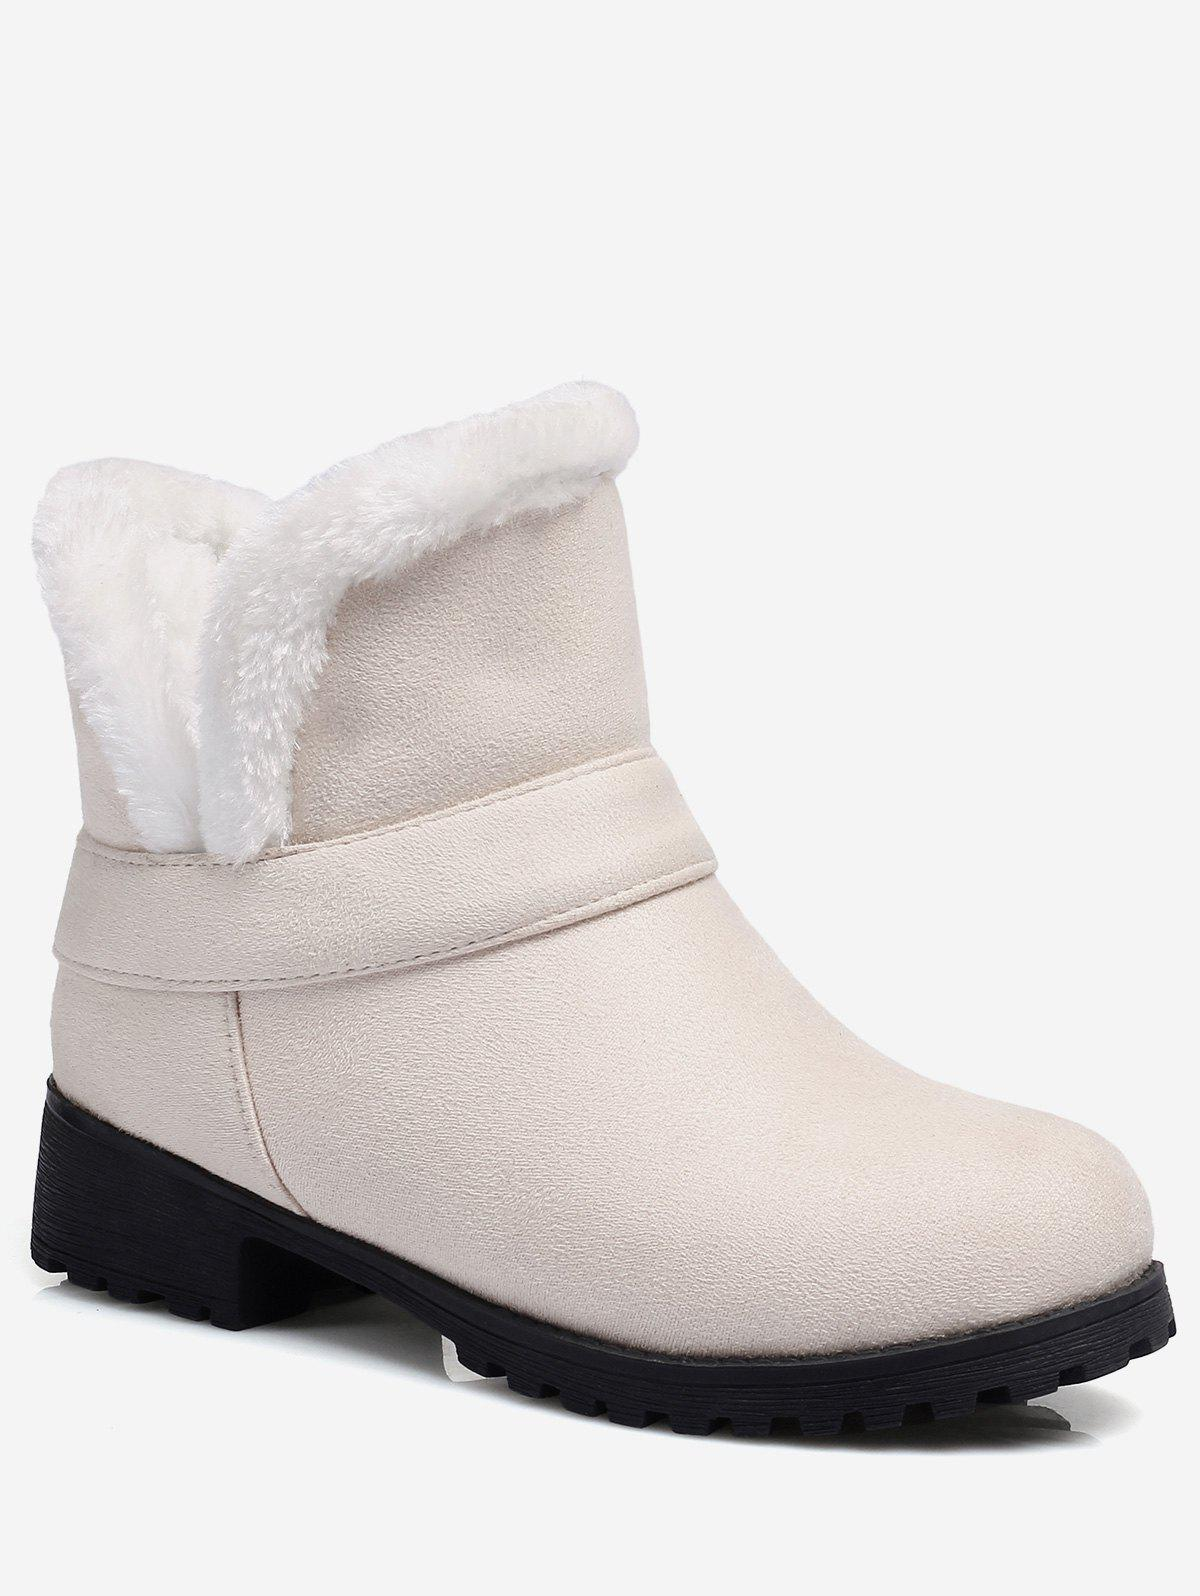 Fashion Plus Size Slip-on Suede Short Boots